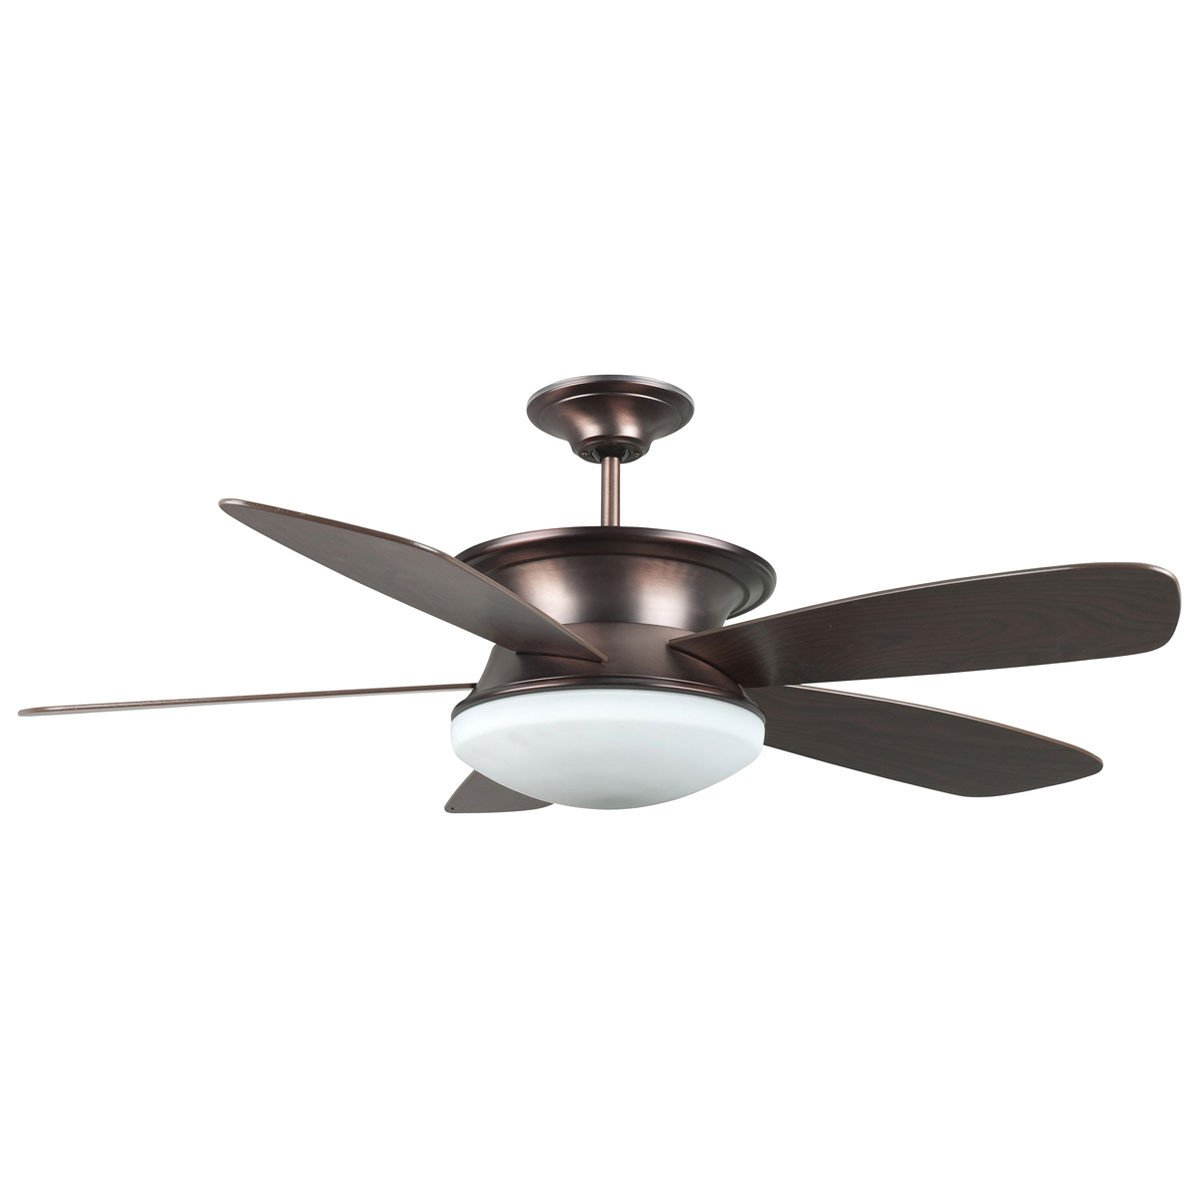 "Concord Fans 52"" Oil Brushed Brass Ceiling Fan w/ Up & Down Light + Wall Control"